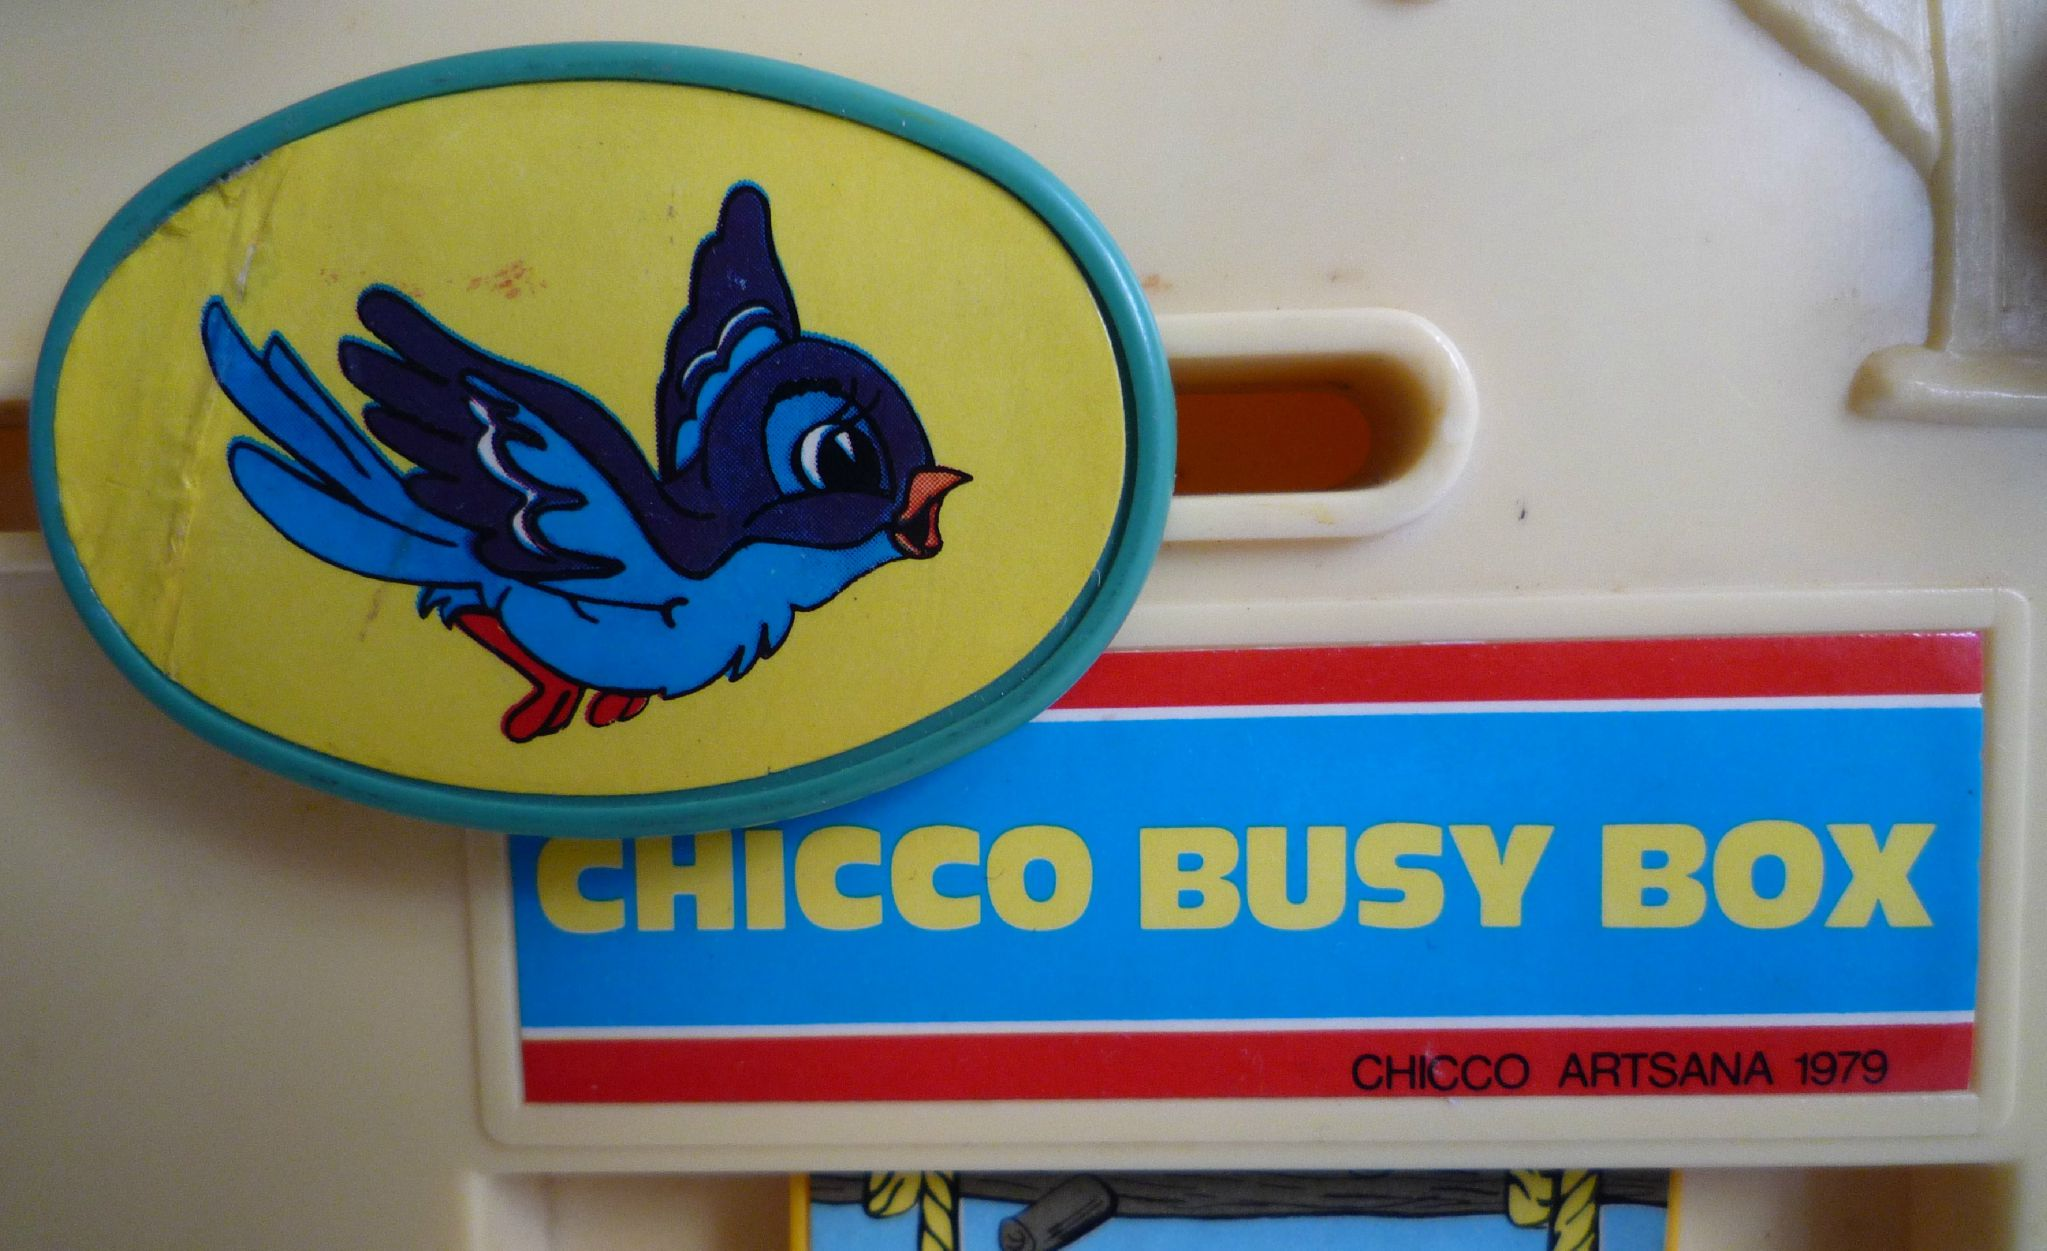 Chicco Busy Box 1979 (2)